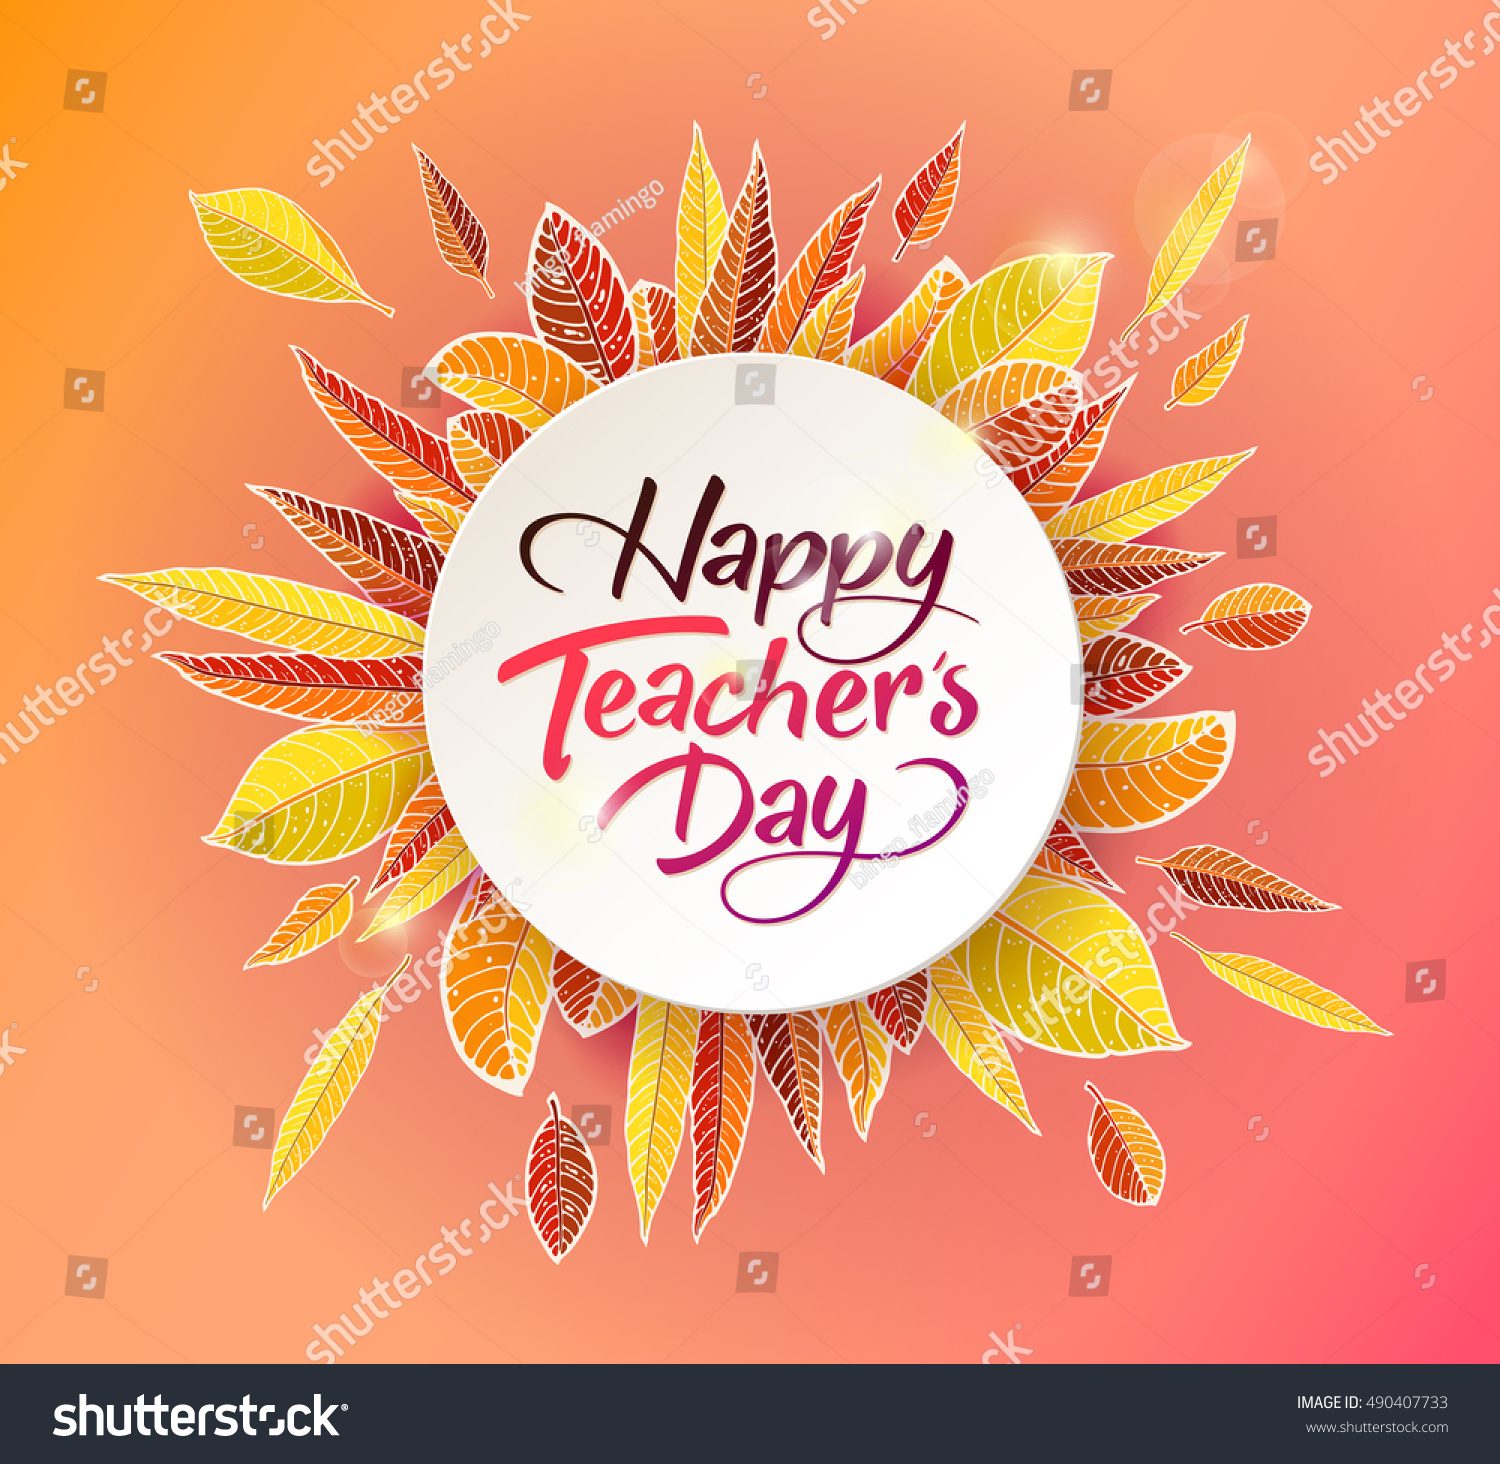 Happy teachers day vector lettering typography stock vector happy teachers day vector lettering typography design with autumn leaves for greeting card or kristyandbryce Choice Image